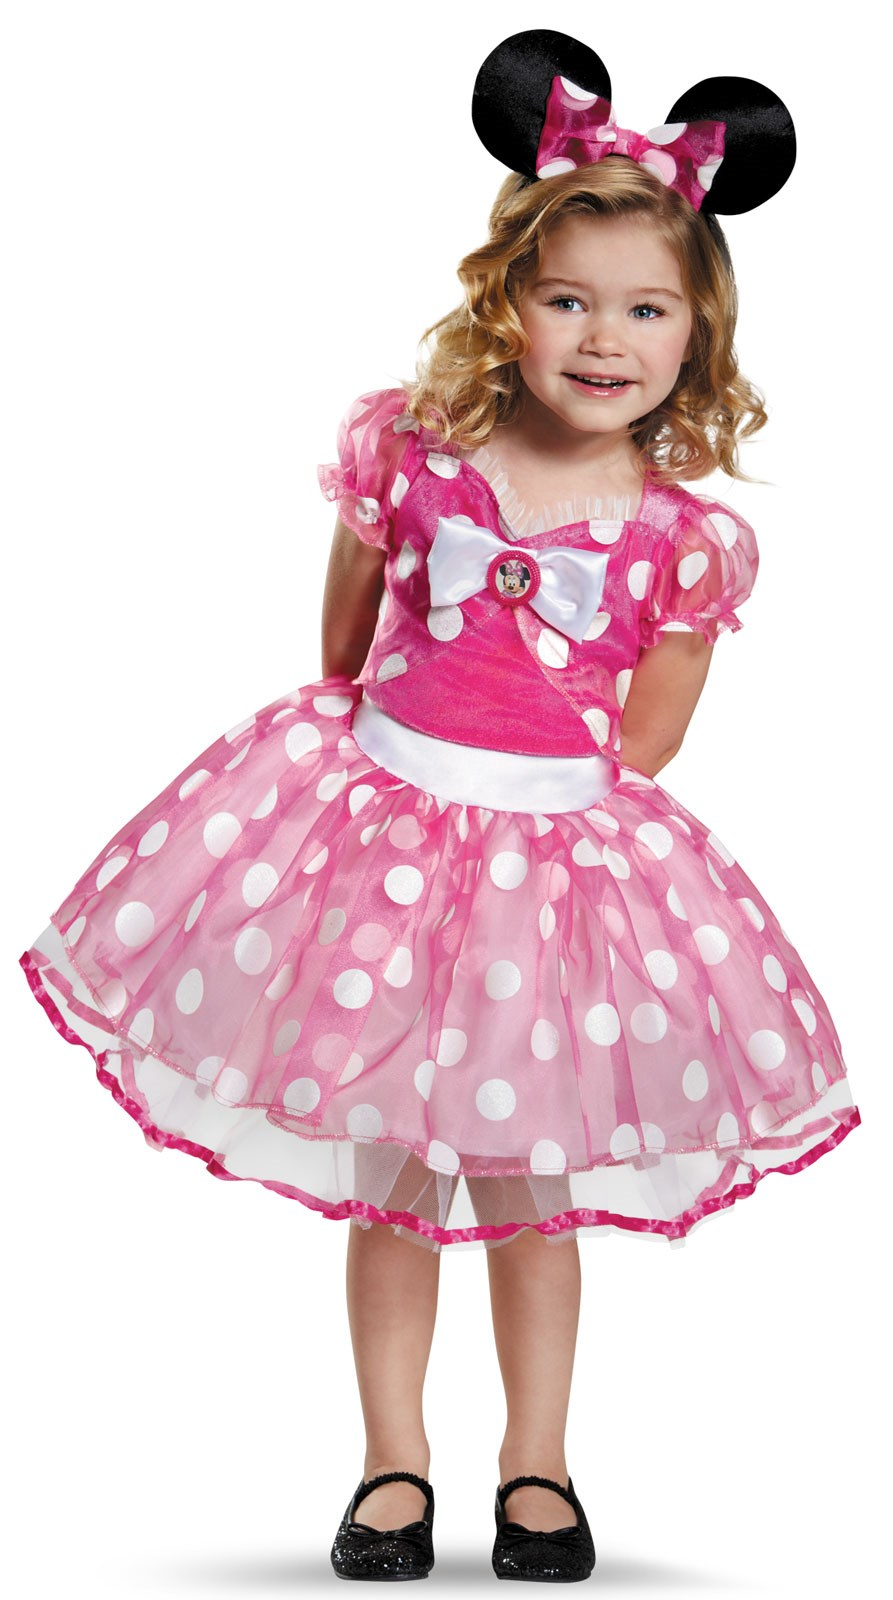 Kids Deluxe Pink Minnie Mouse Tutu Costume